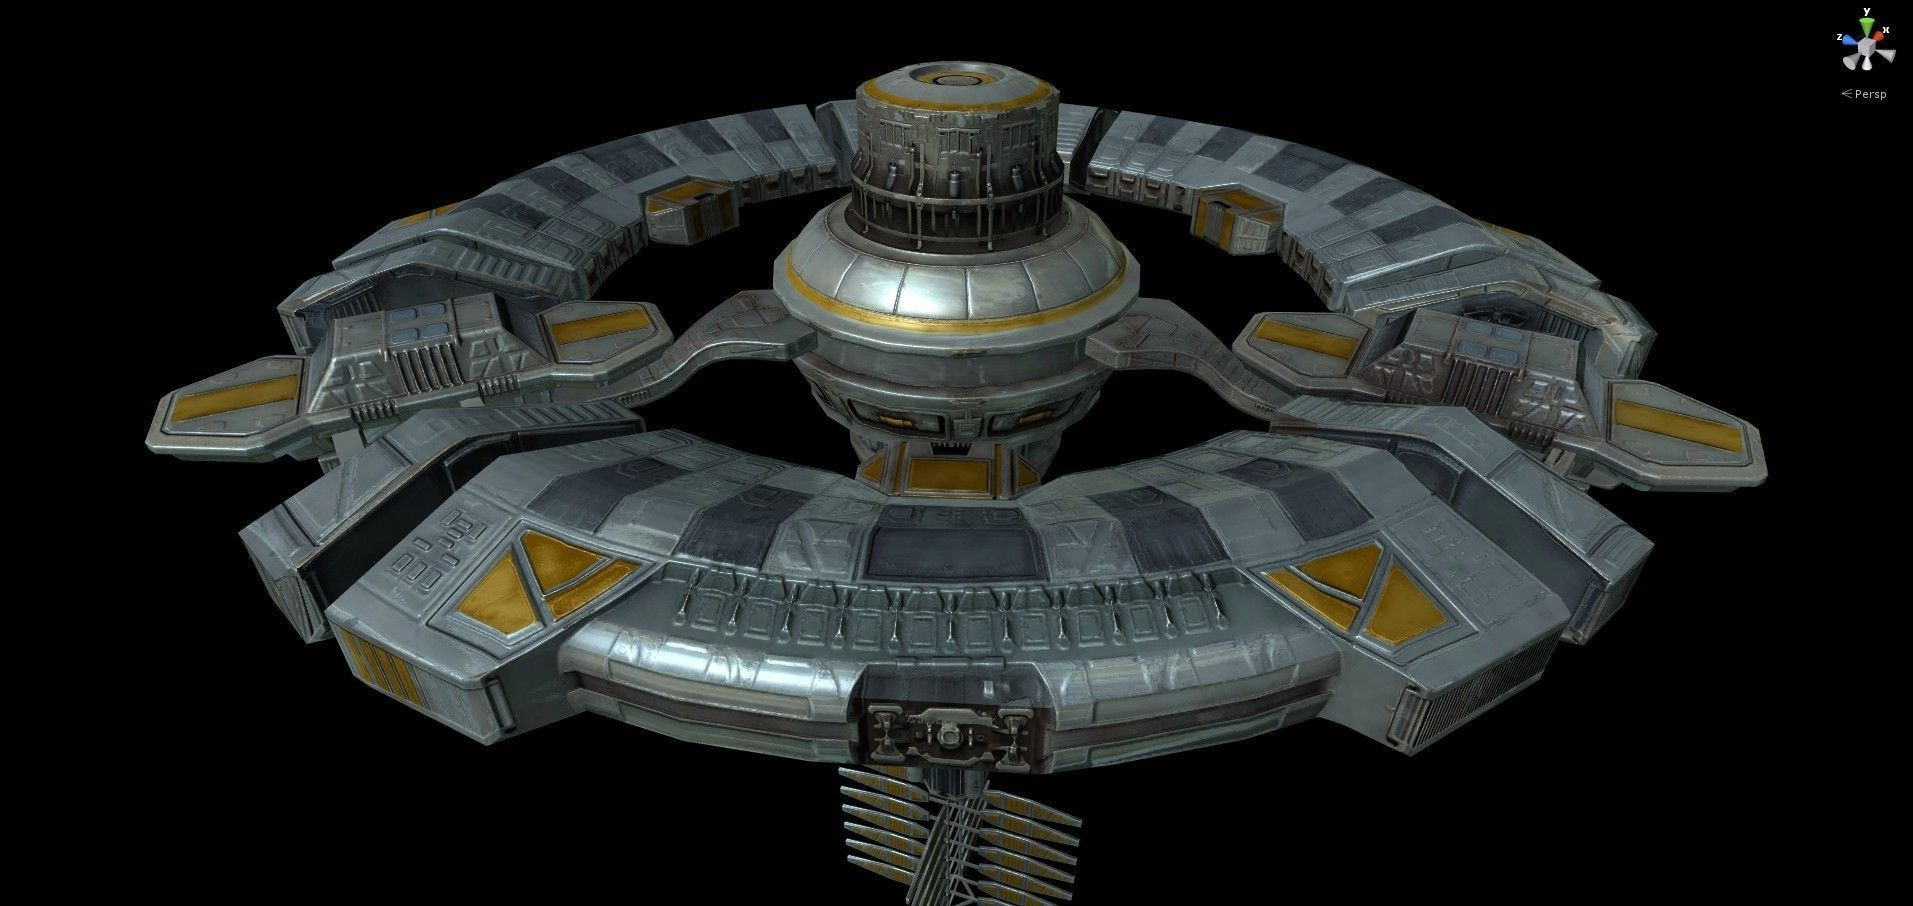 space station 3d models - photo #11